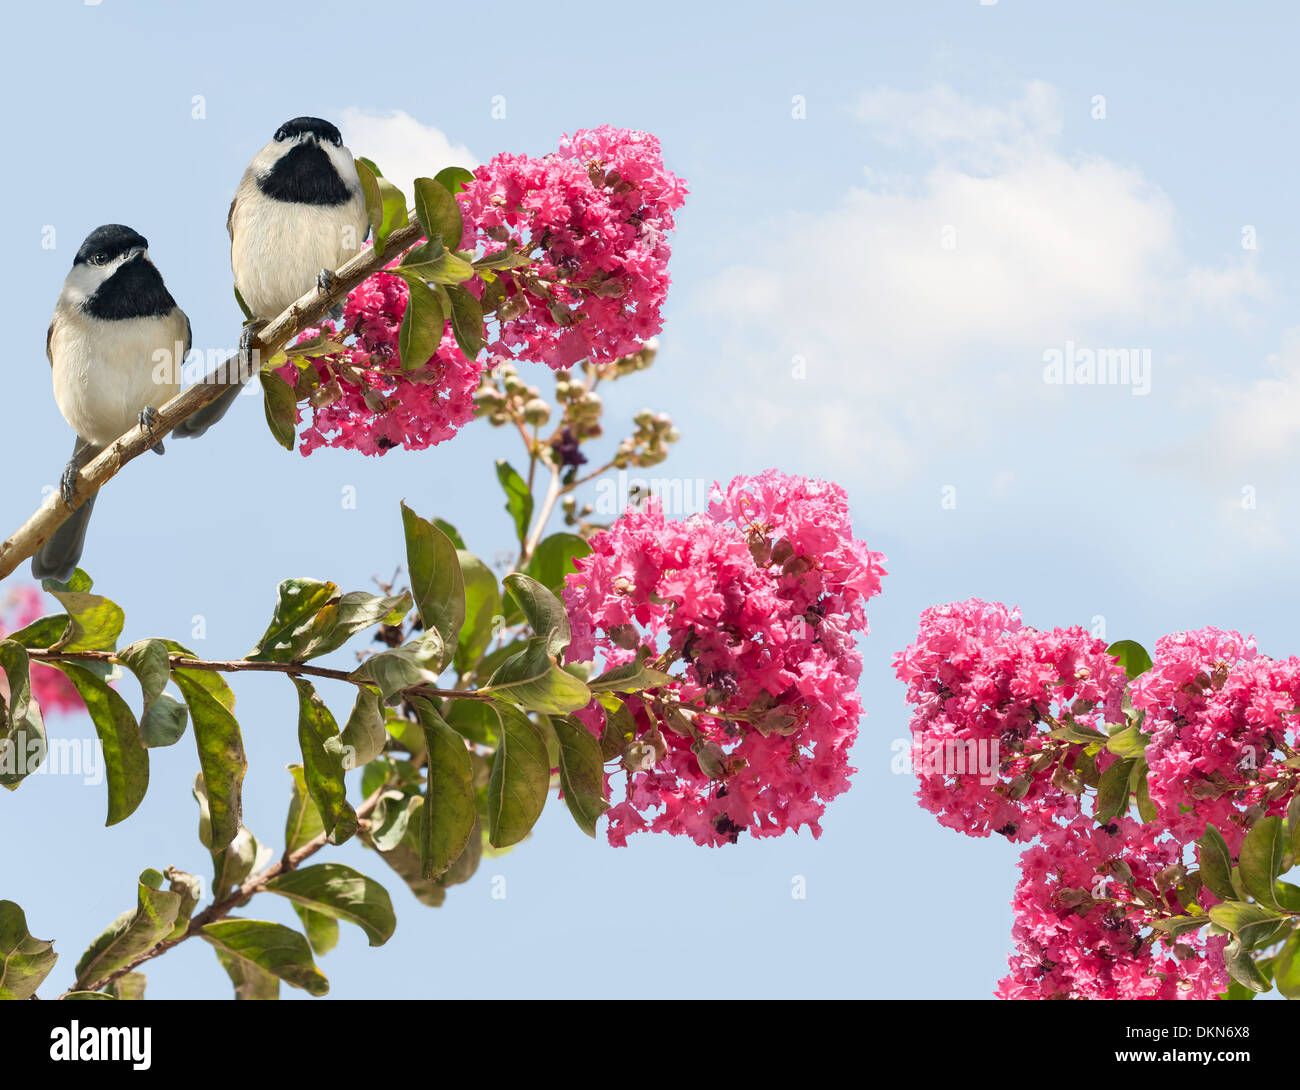 Two Chickadees in a Crape Myrtle Tree - Stock Image